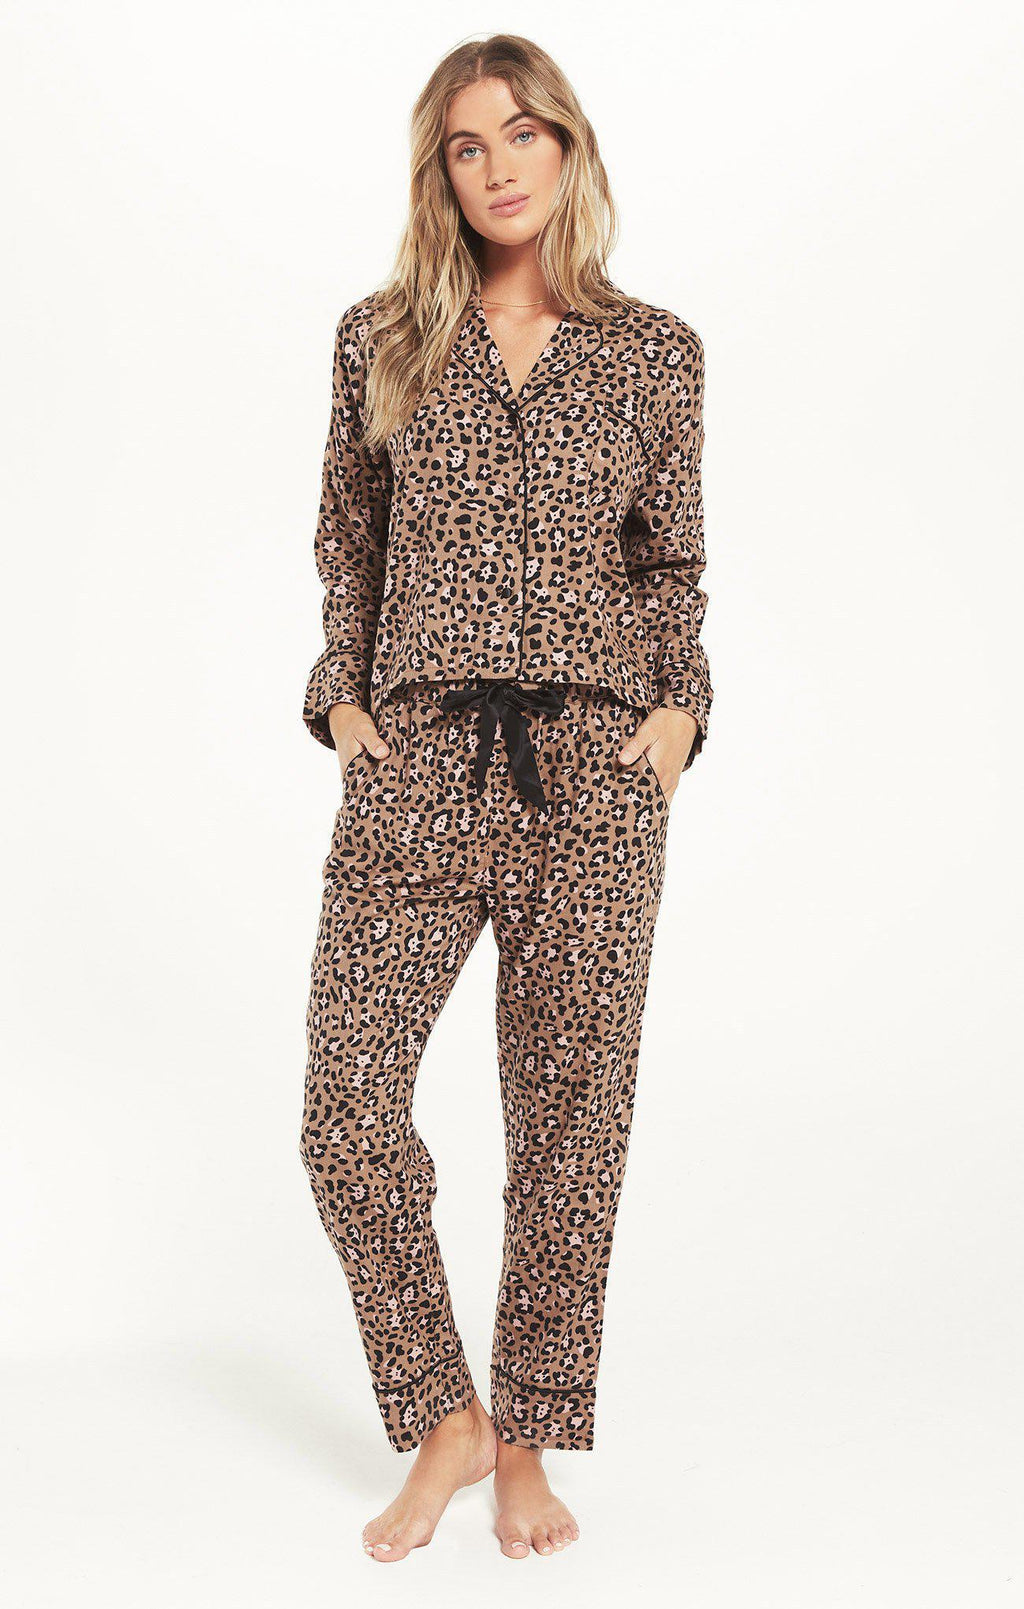 Z Supply Dream State Leopard PJ Set - 13 Hub Lane   |